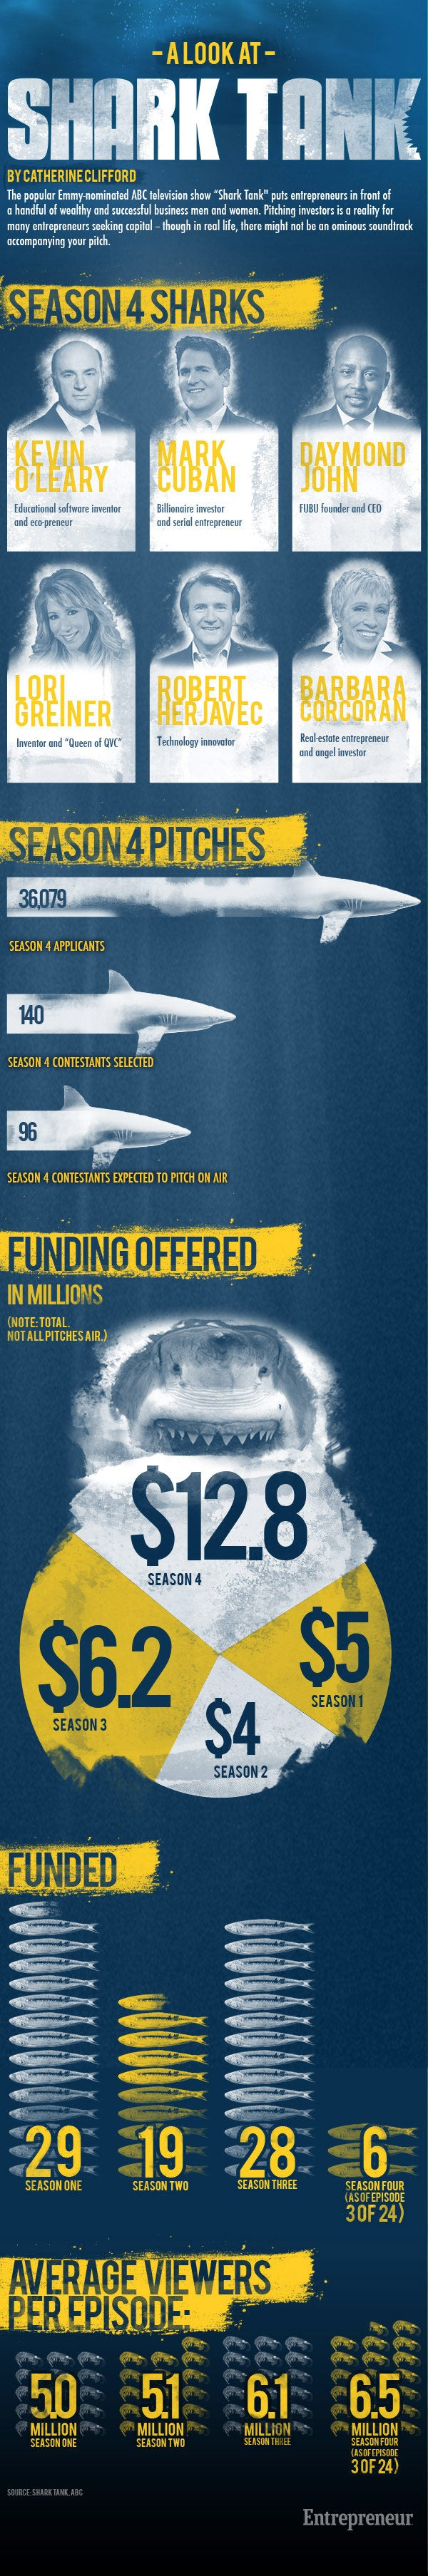 Shark Tank Popularizing Entrepreneurship (Infographic)